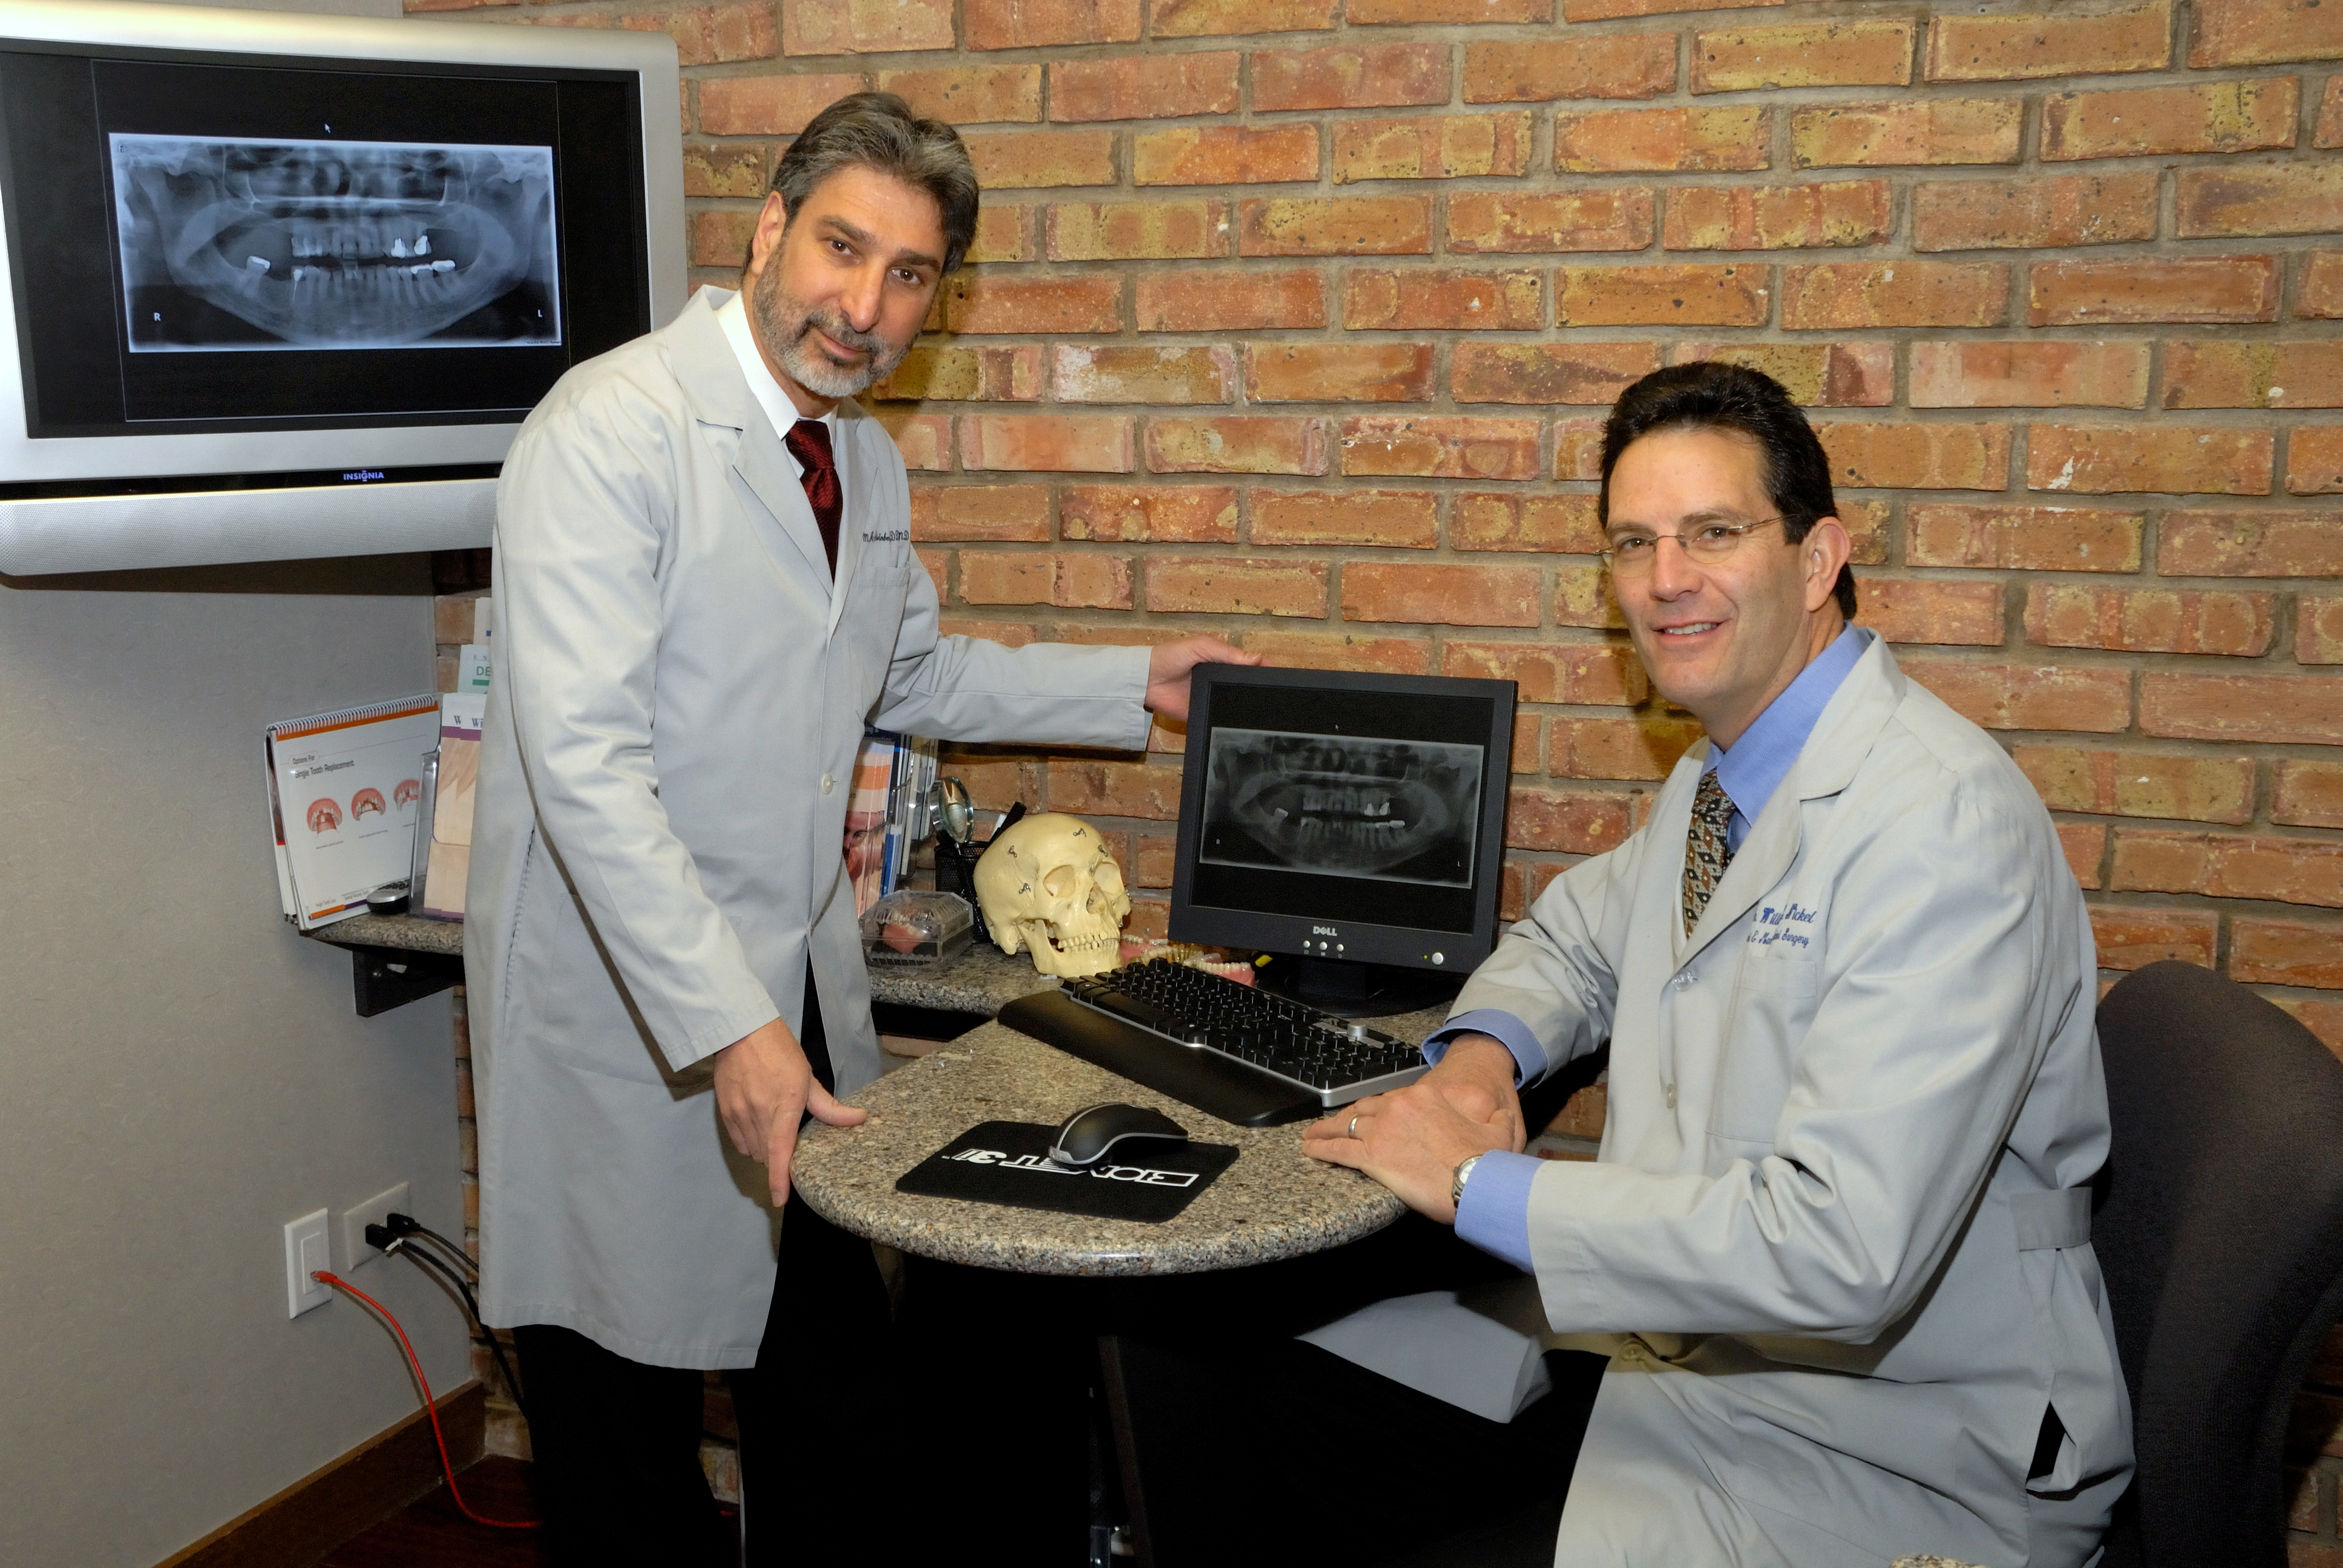 Steinberg, Mark J, Dds - North Suburban Oral Surgery - Northbrook, IL